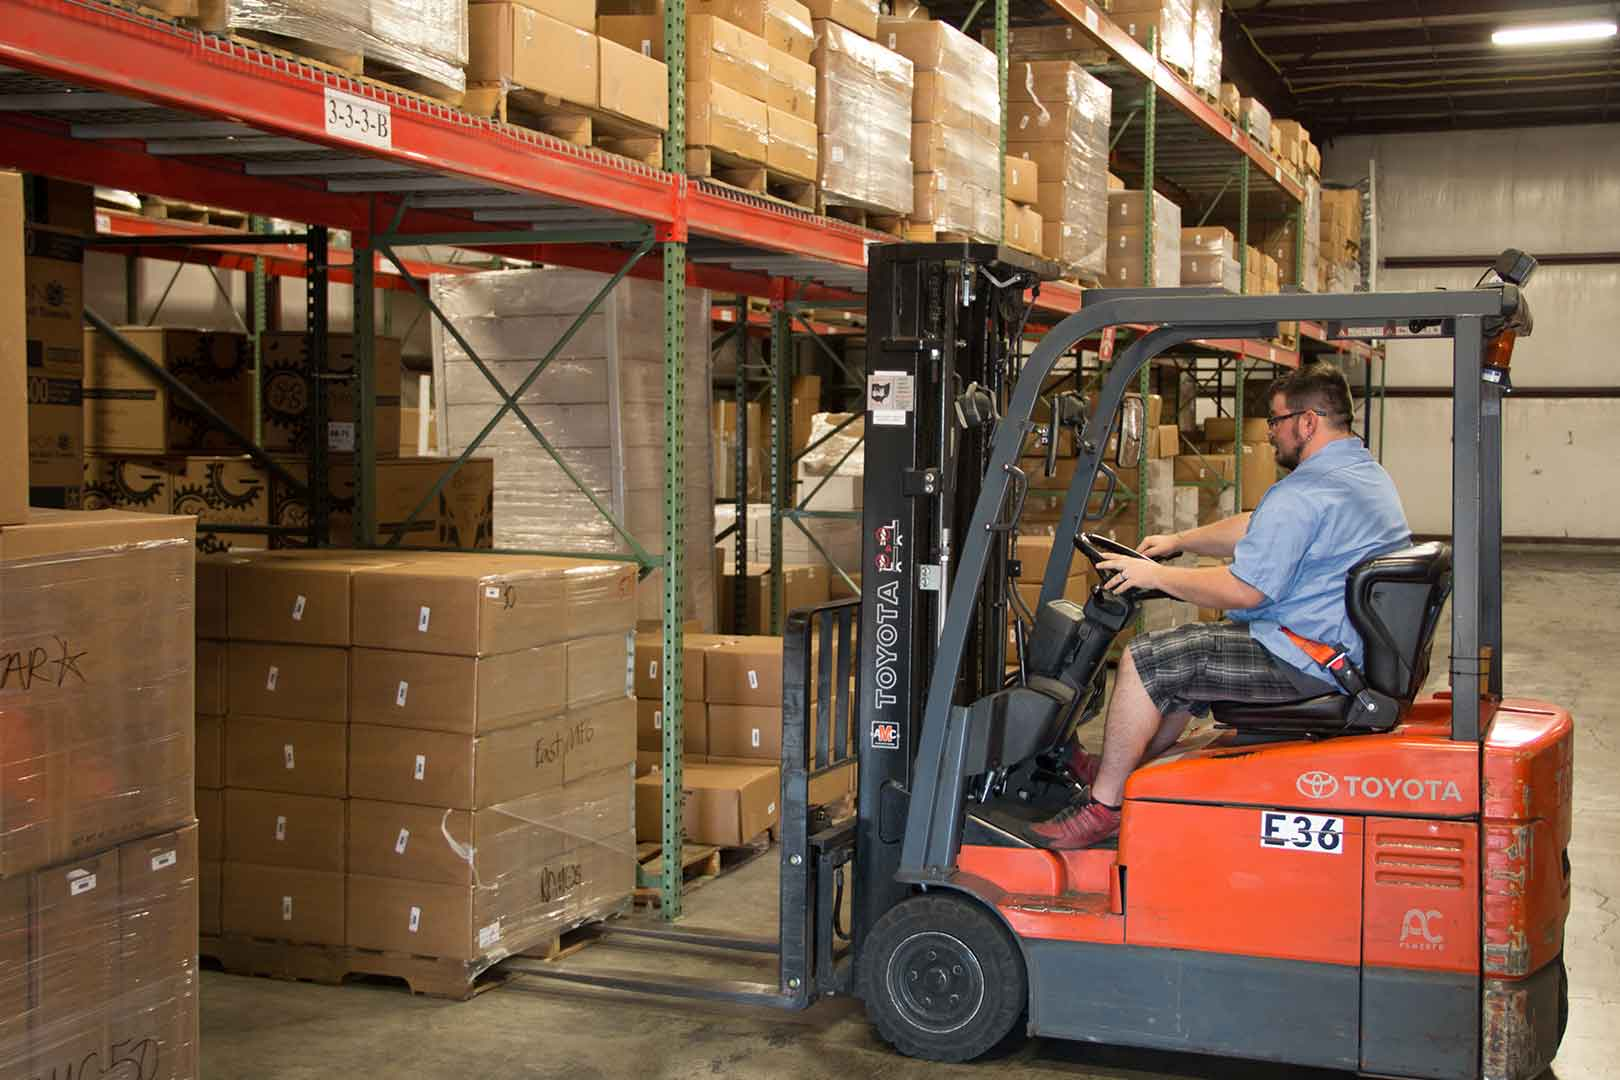 man uses forklift to move boxes in warehouse